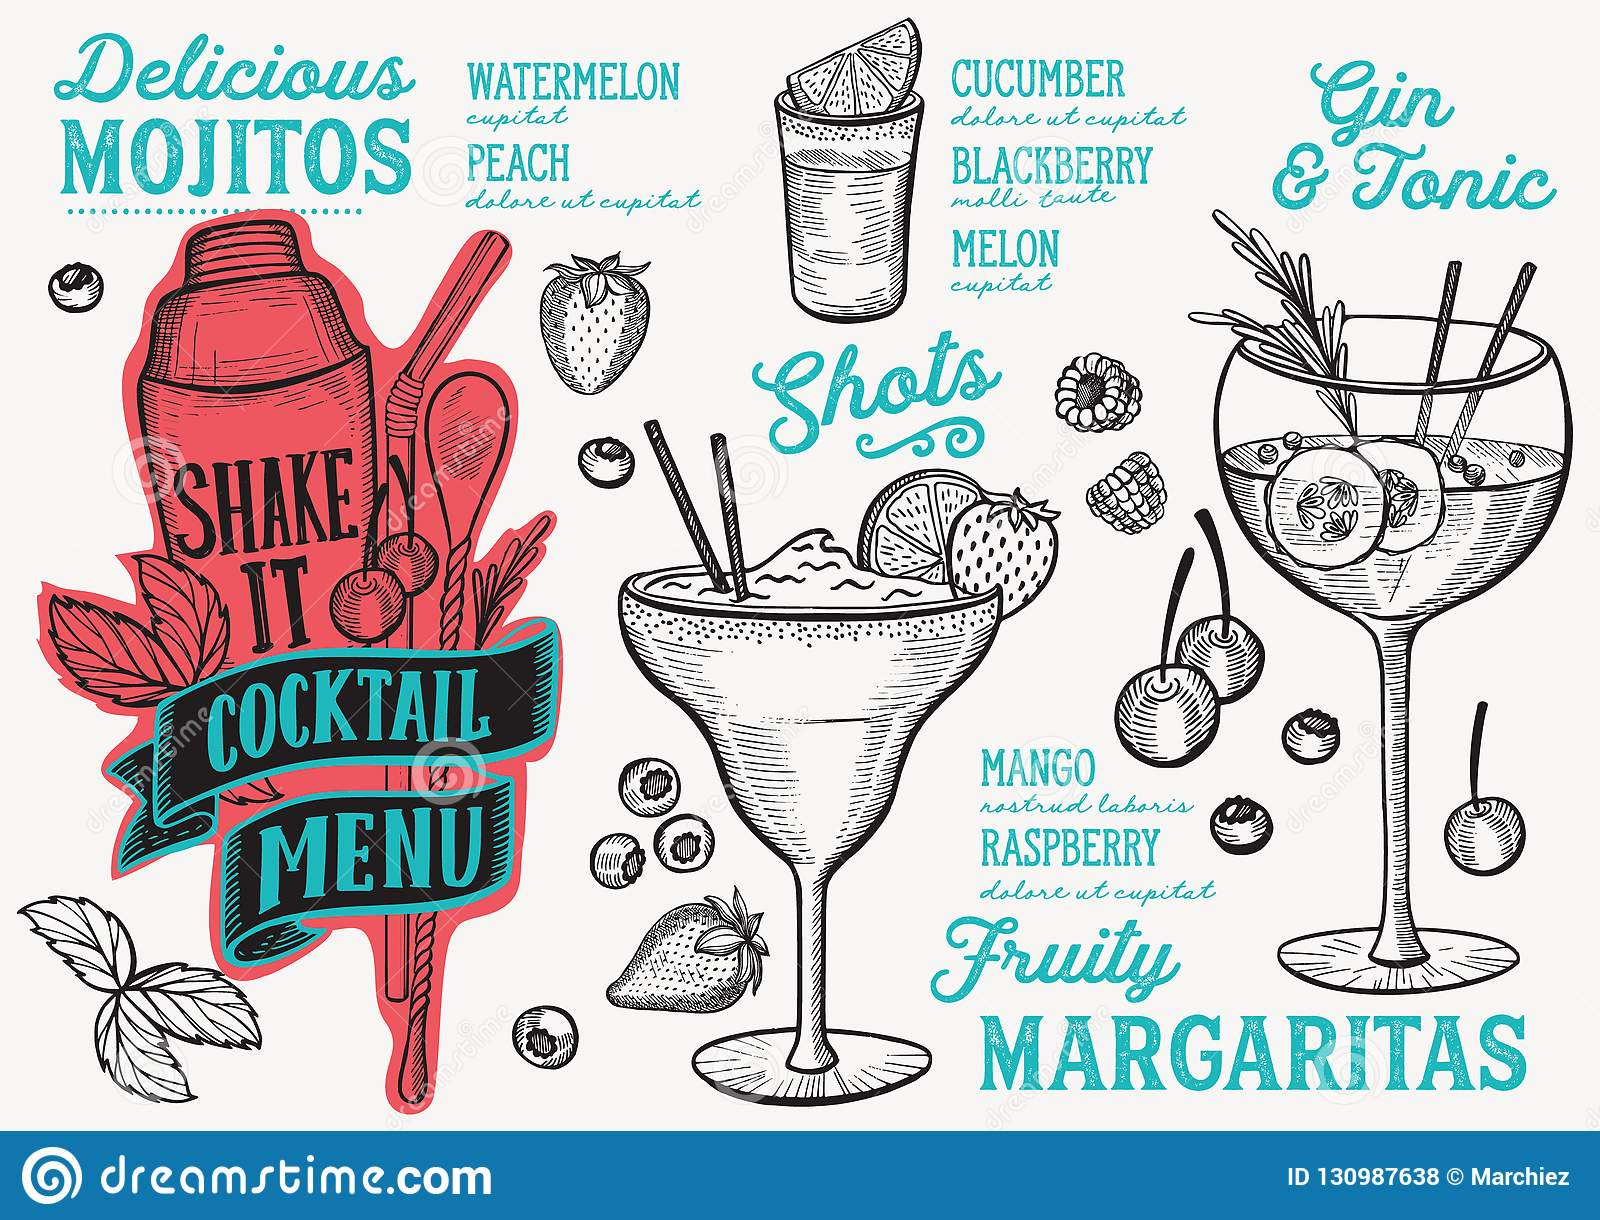 Cocktail Drink Menu Template For Restaurant With Doodle Hand Drawn Graphic Stock Vector Illustration Of Placemat Gourmet 130987638